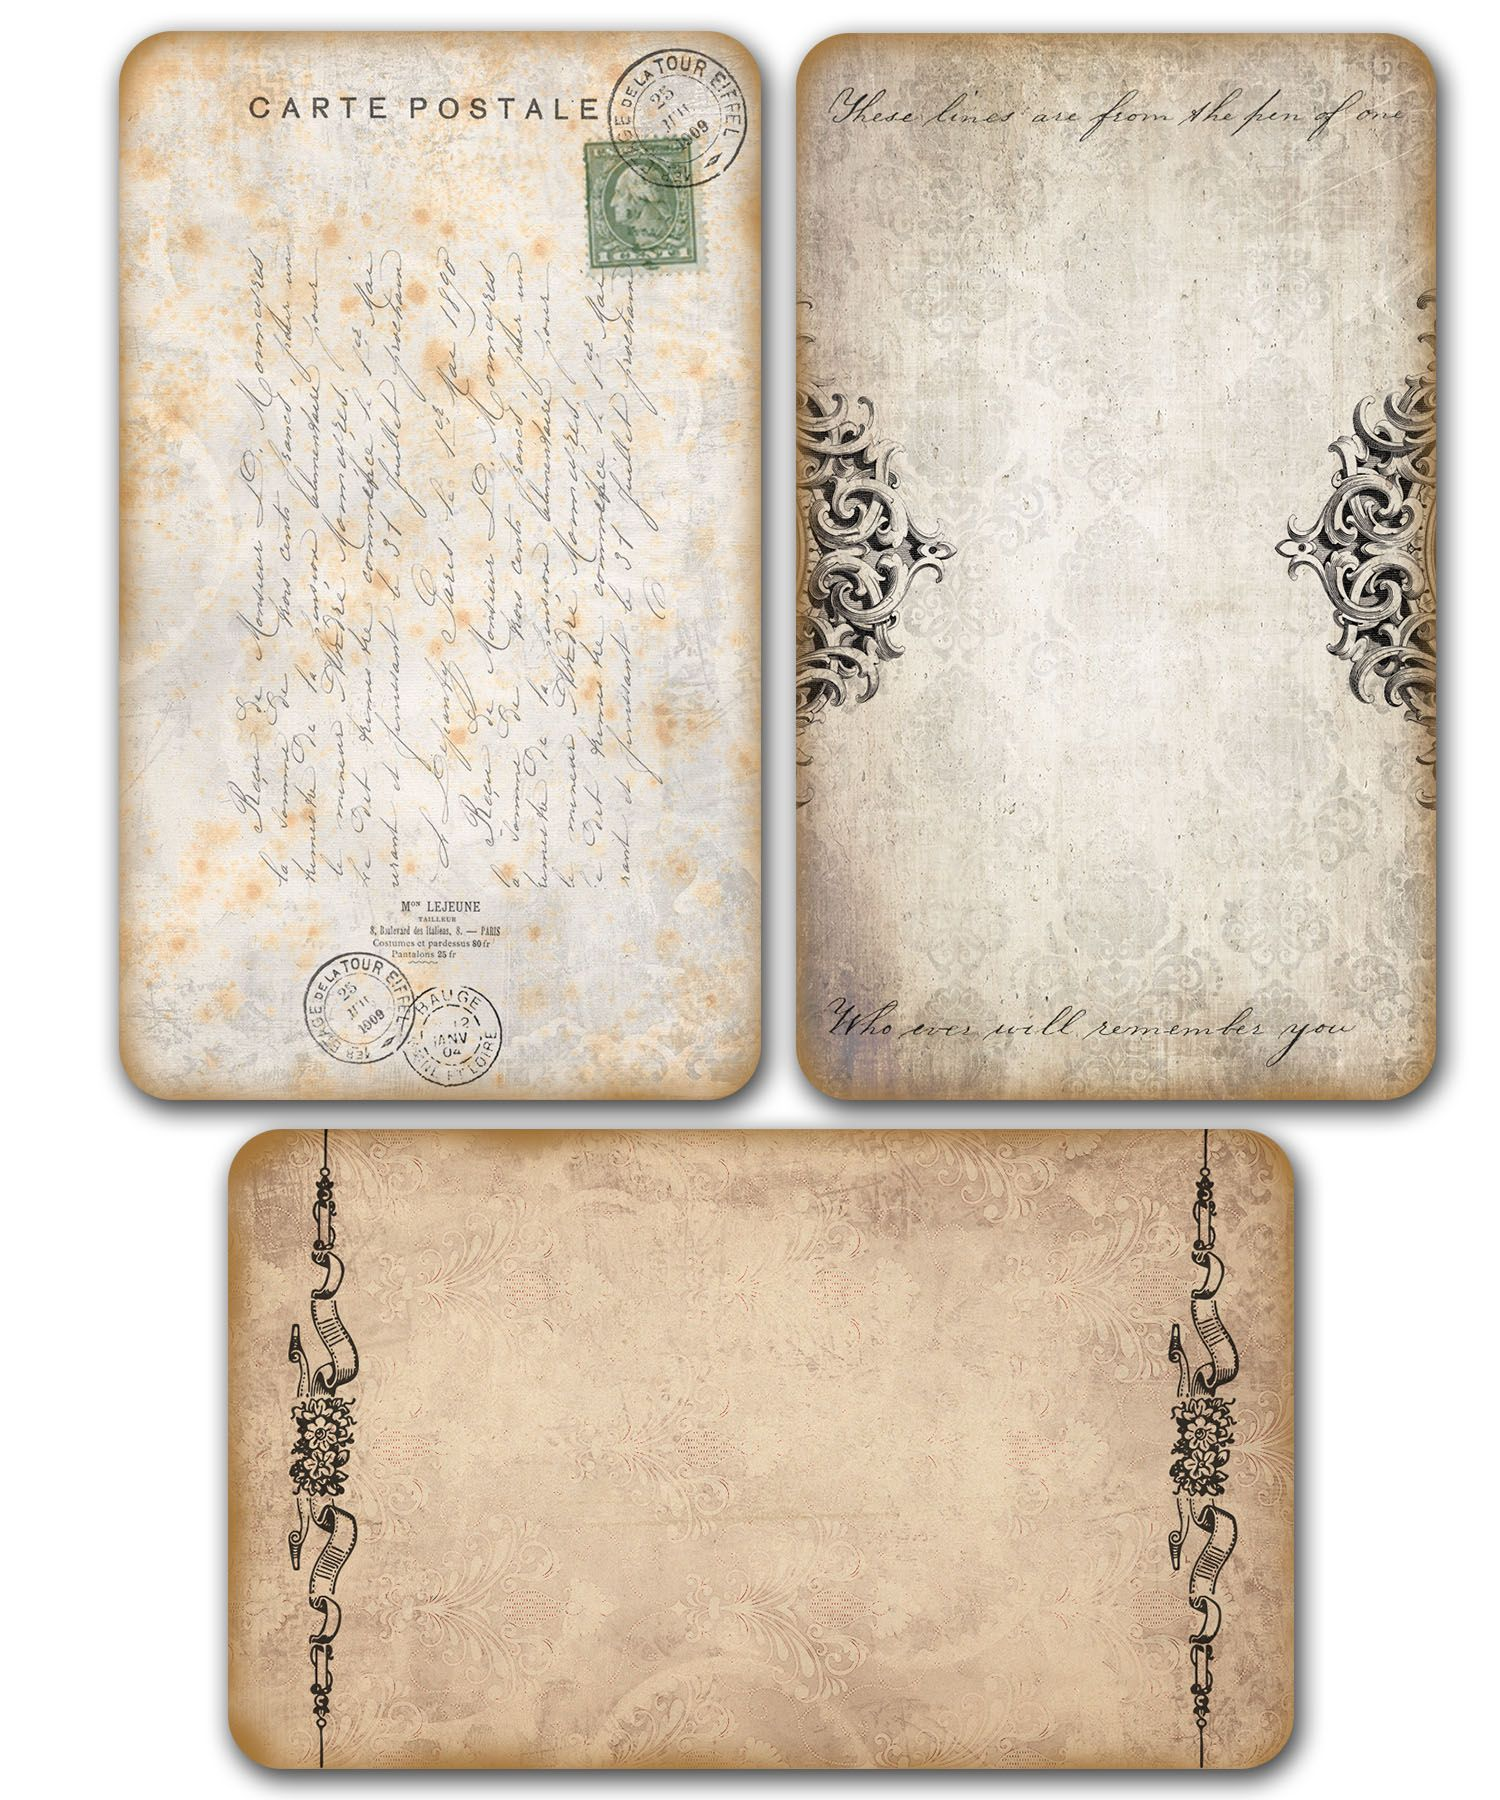 French Torn Printable Free French Label Vintage Paper Vintage Paper Vintage Printables Vintage Journal